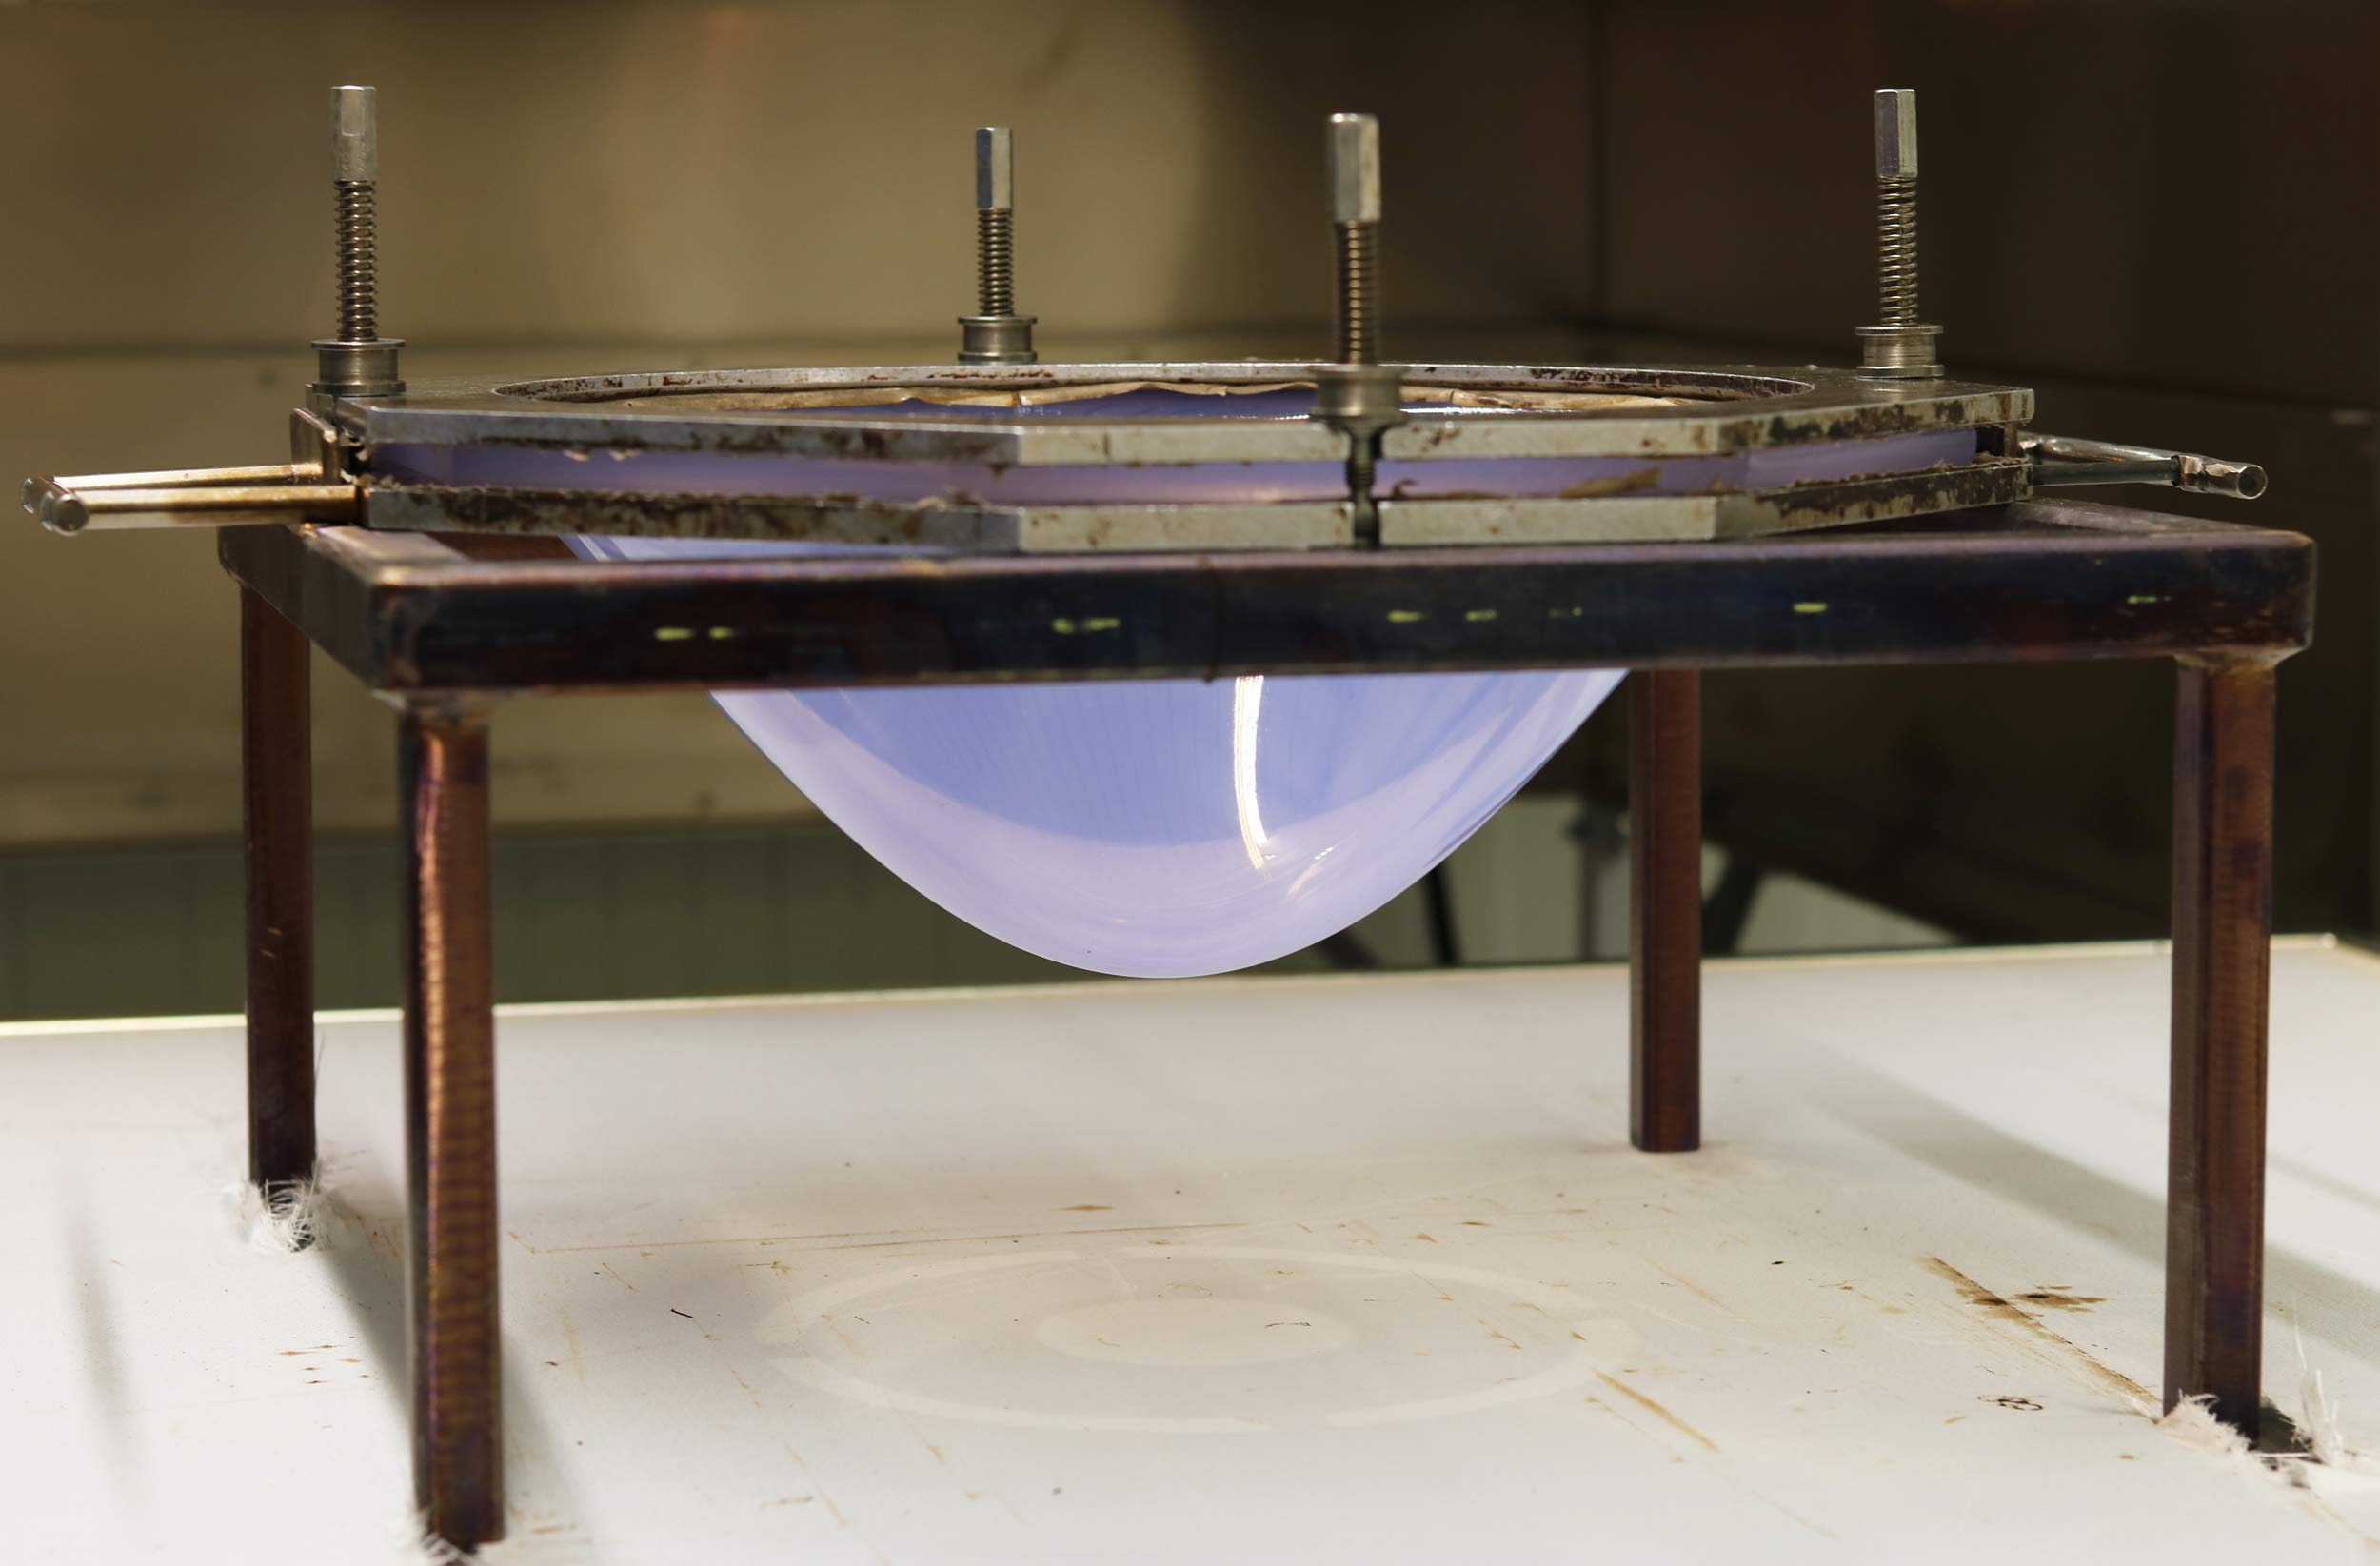 Bubble formed thermoplastic sheet for the creation of prosthetic sockets in a supporting frame